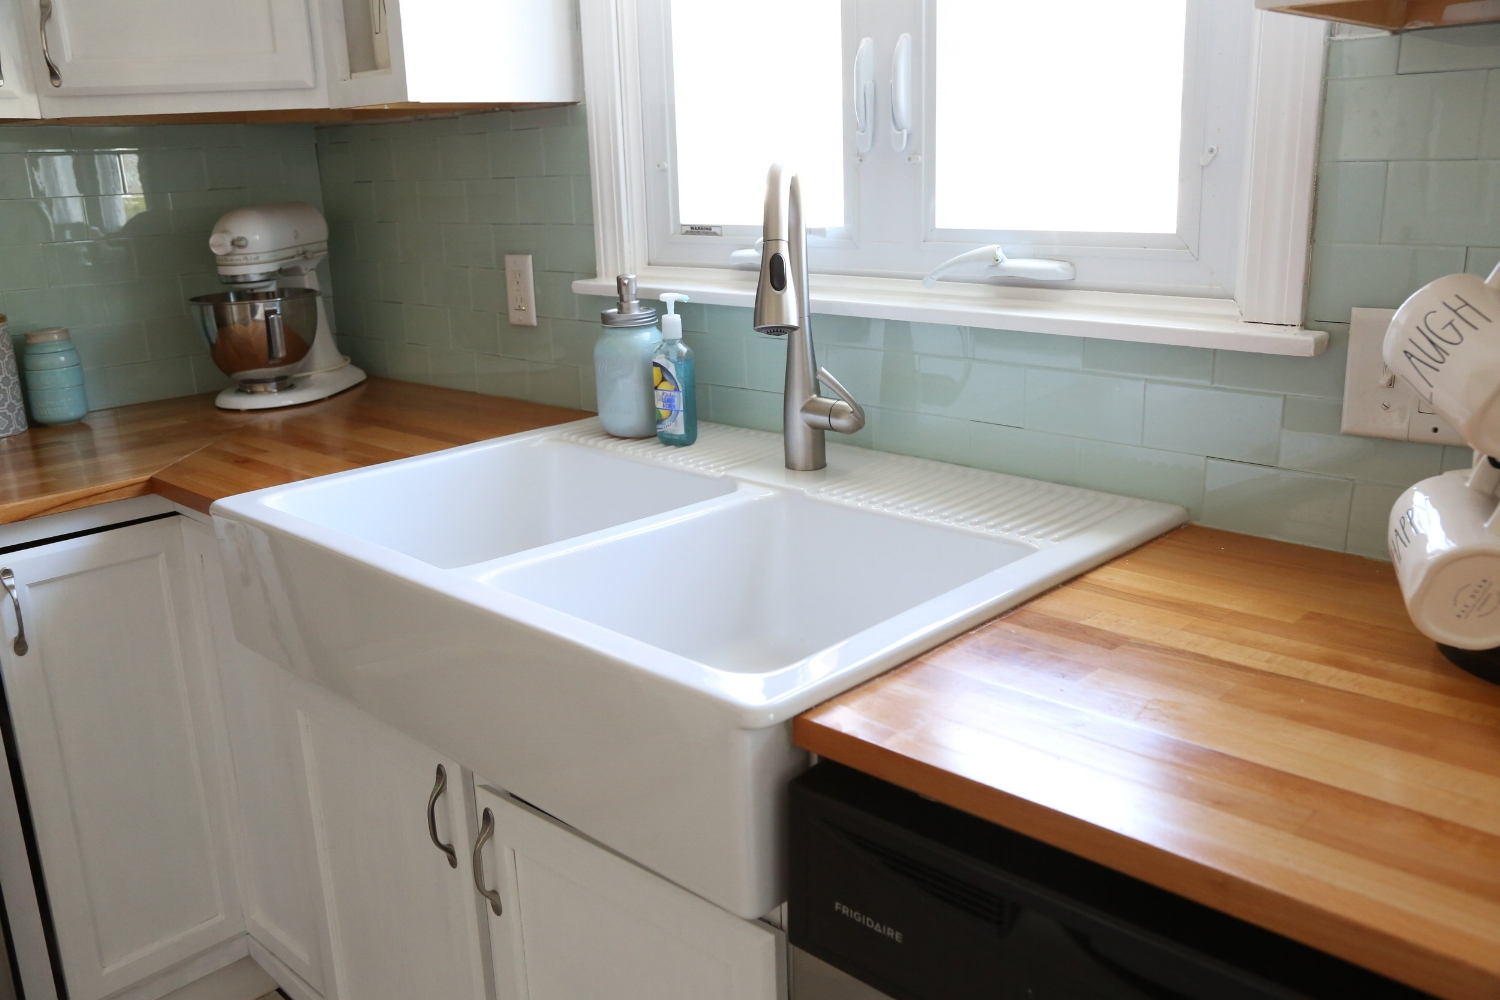 How Do You Attach Crown Molding To Kitchen Cabinets Installing An Ikea Farmhouse Sink — Weekend Craft